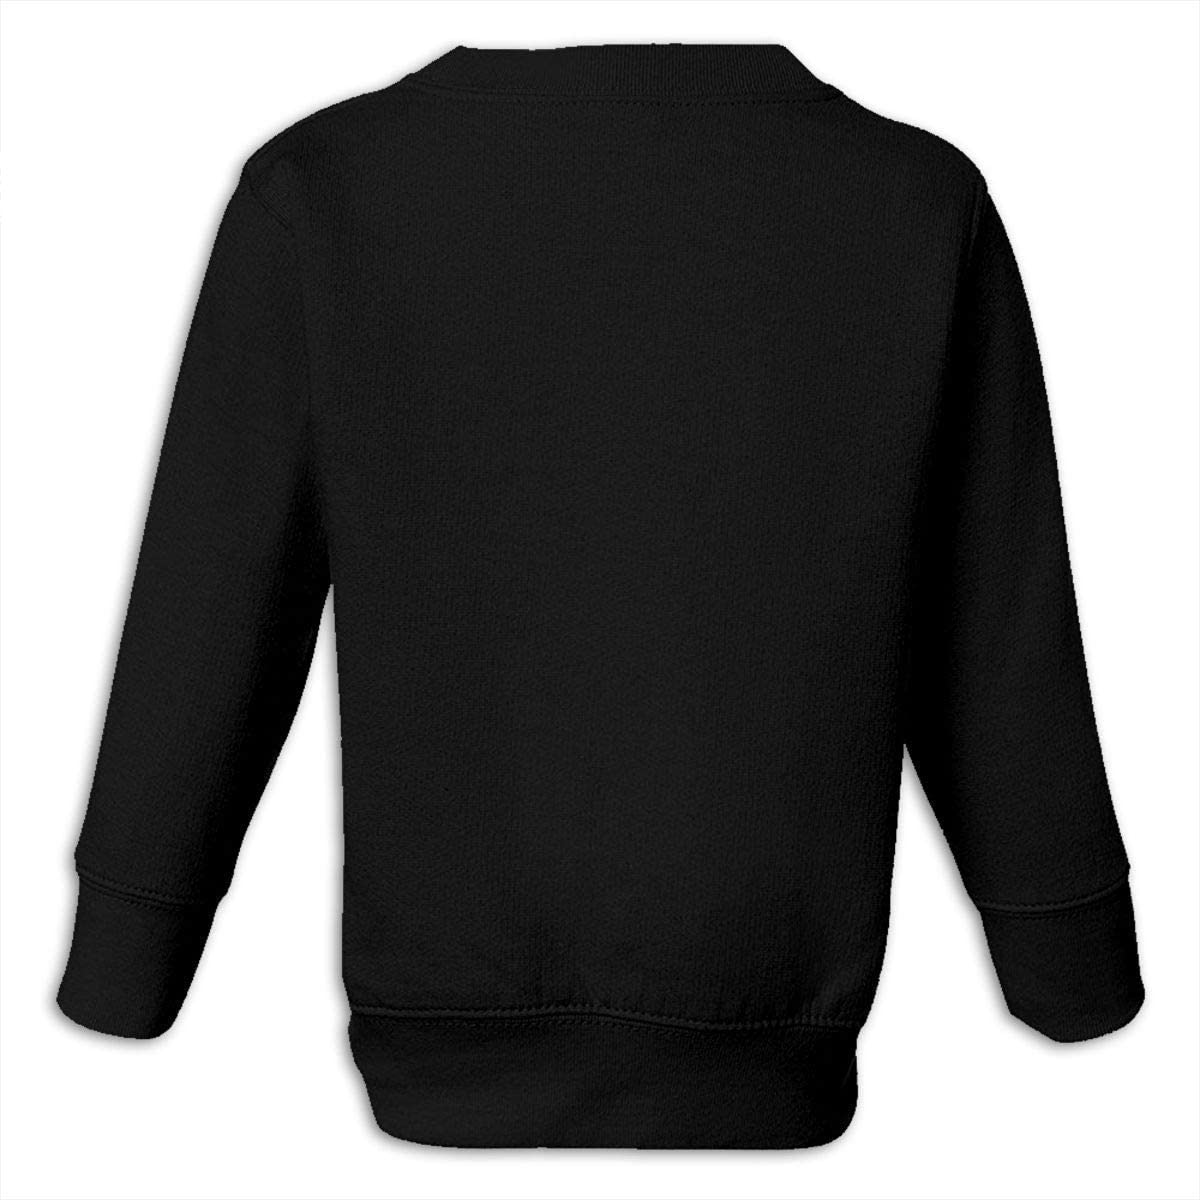 wudici Gas Clutch Shift Repeat Boys Girls Pullover Sweaters Crewneck Sweatshirts Clothes for 2-6 Years Old Children